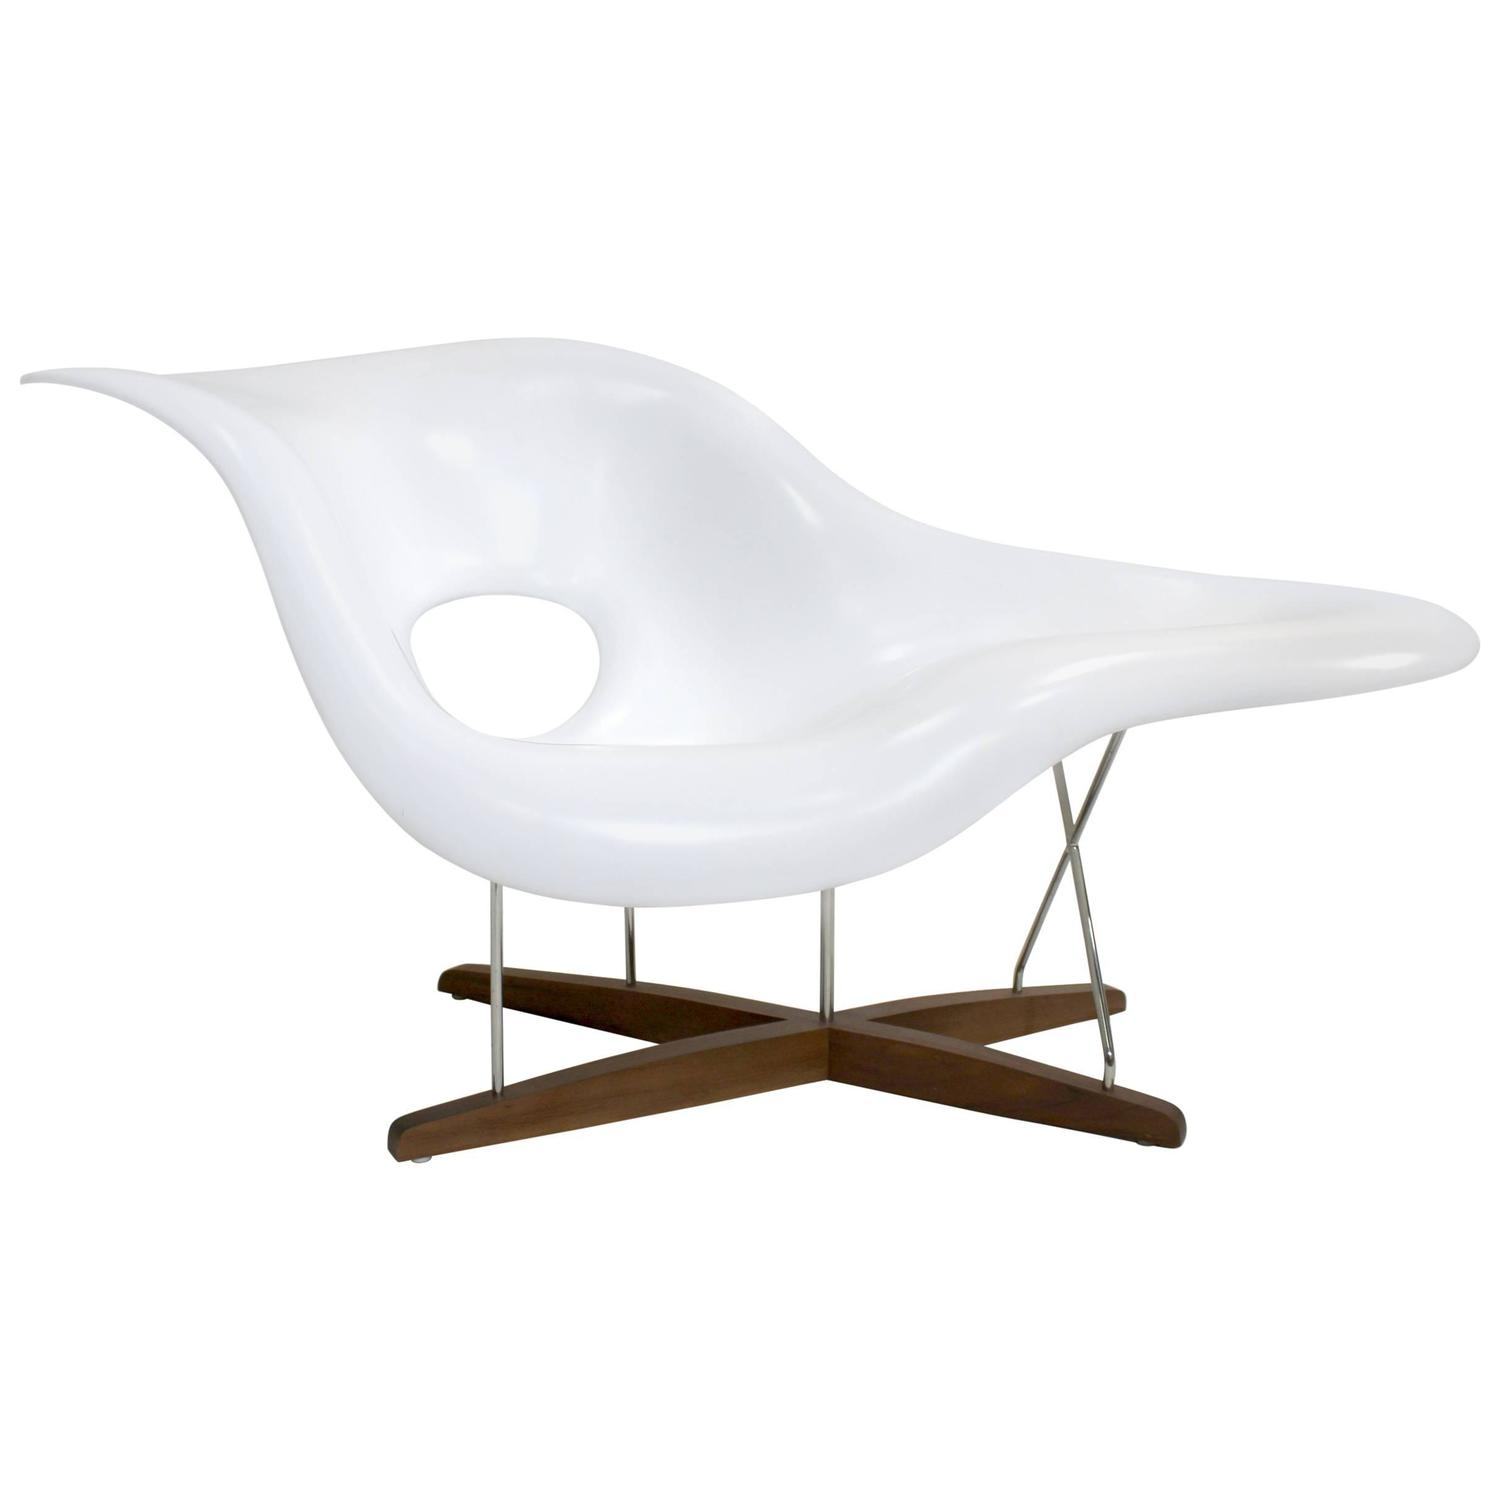 Eames Vitra White La Chaise Chair at 1stdibs